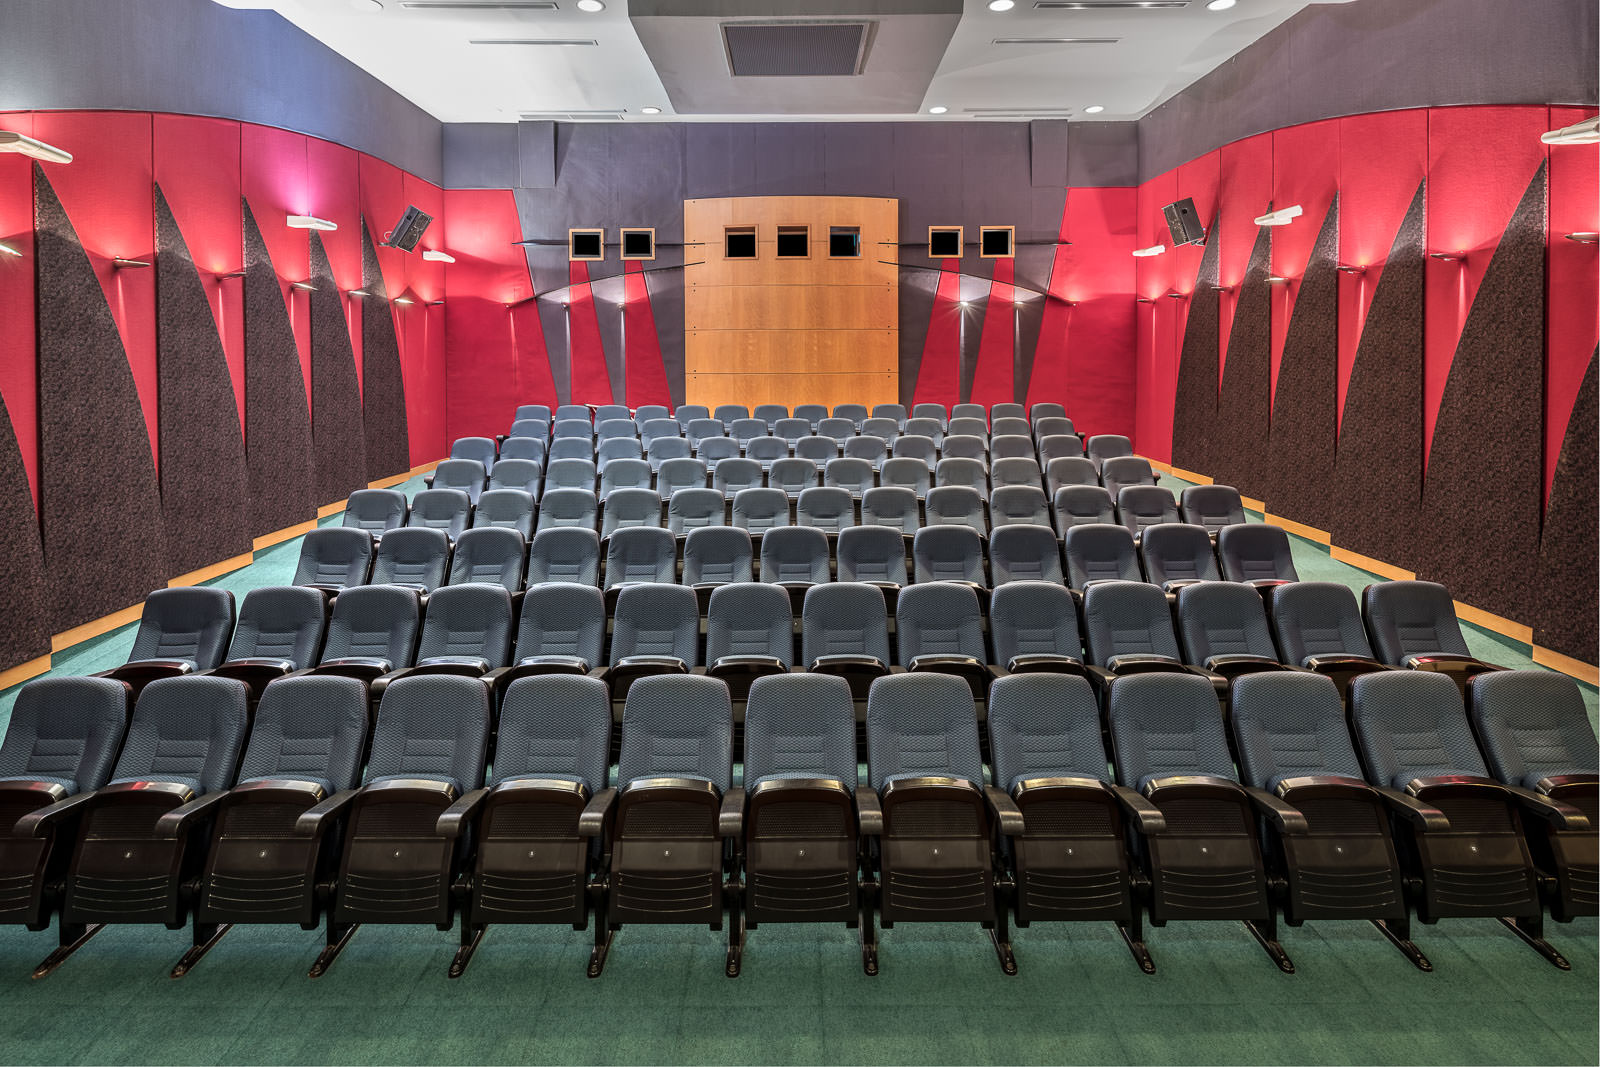 Interior photography of the seletar country club in singapore showing a straight angle of the auditorium